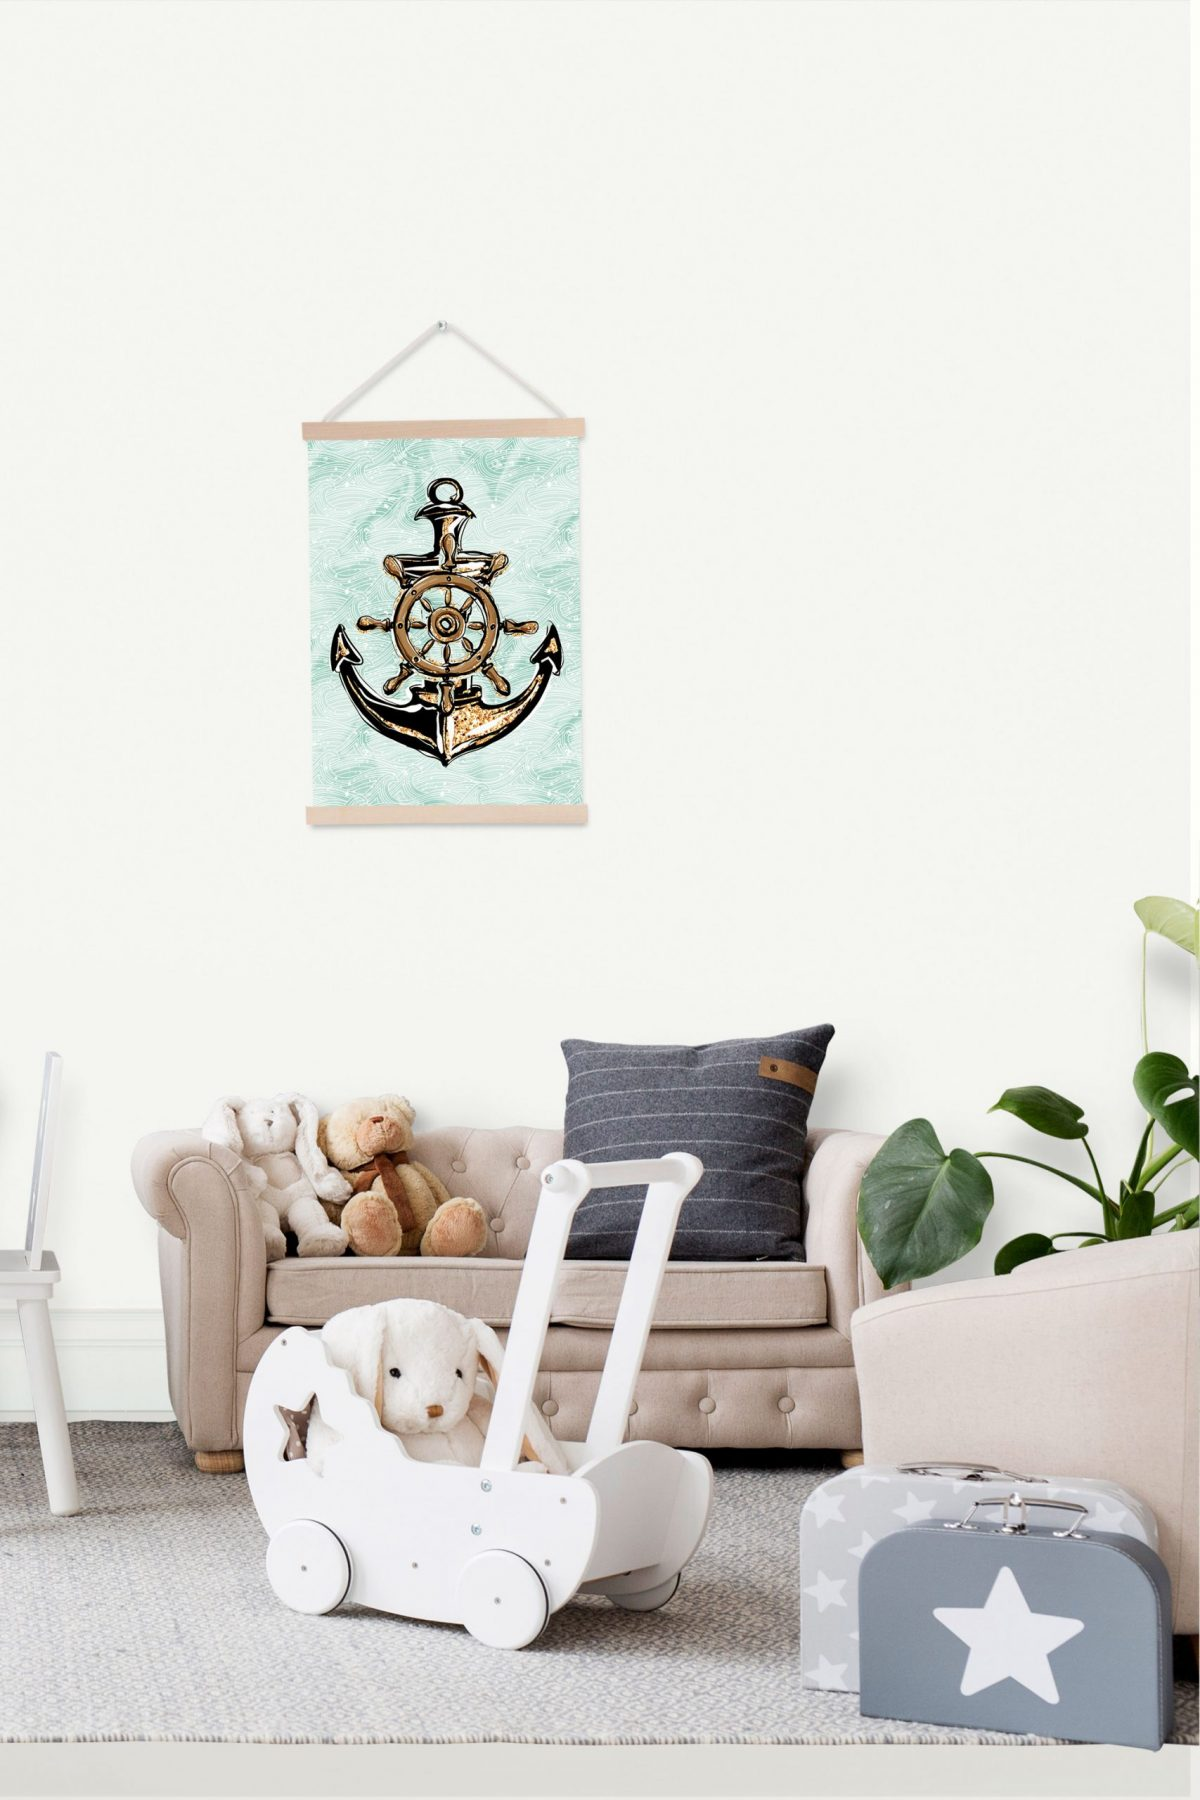 BANNERMOCKUP-Pirate-Anchor